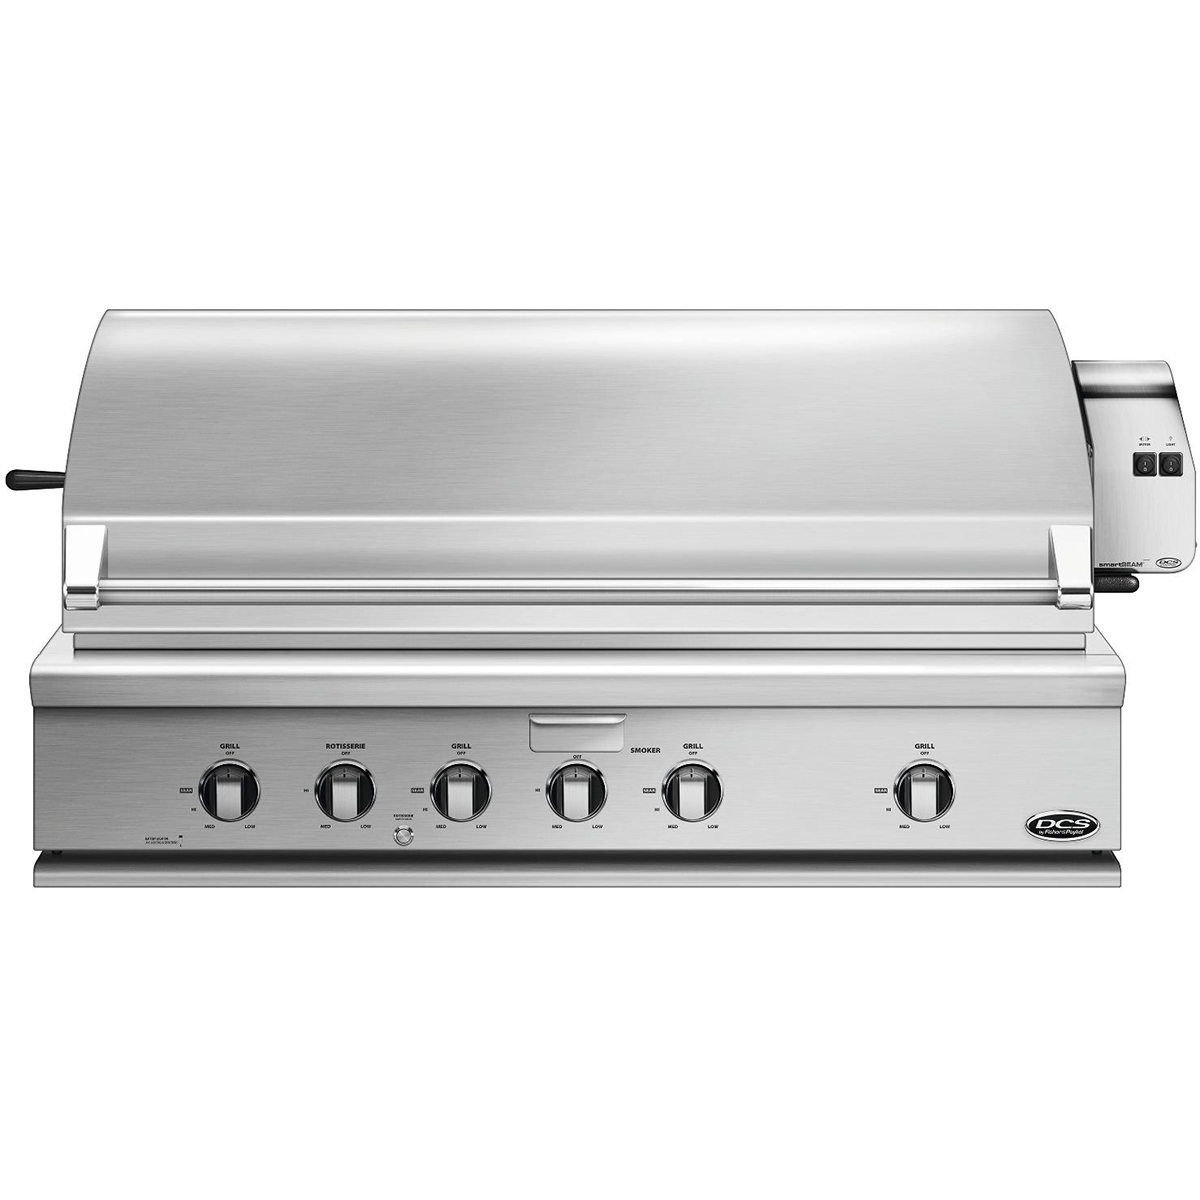 DCS 48 inch Built-in Gas Grill - Natural Gas - BGC48-BQAR-N